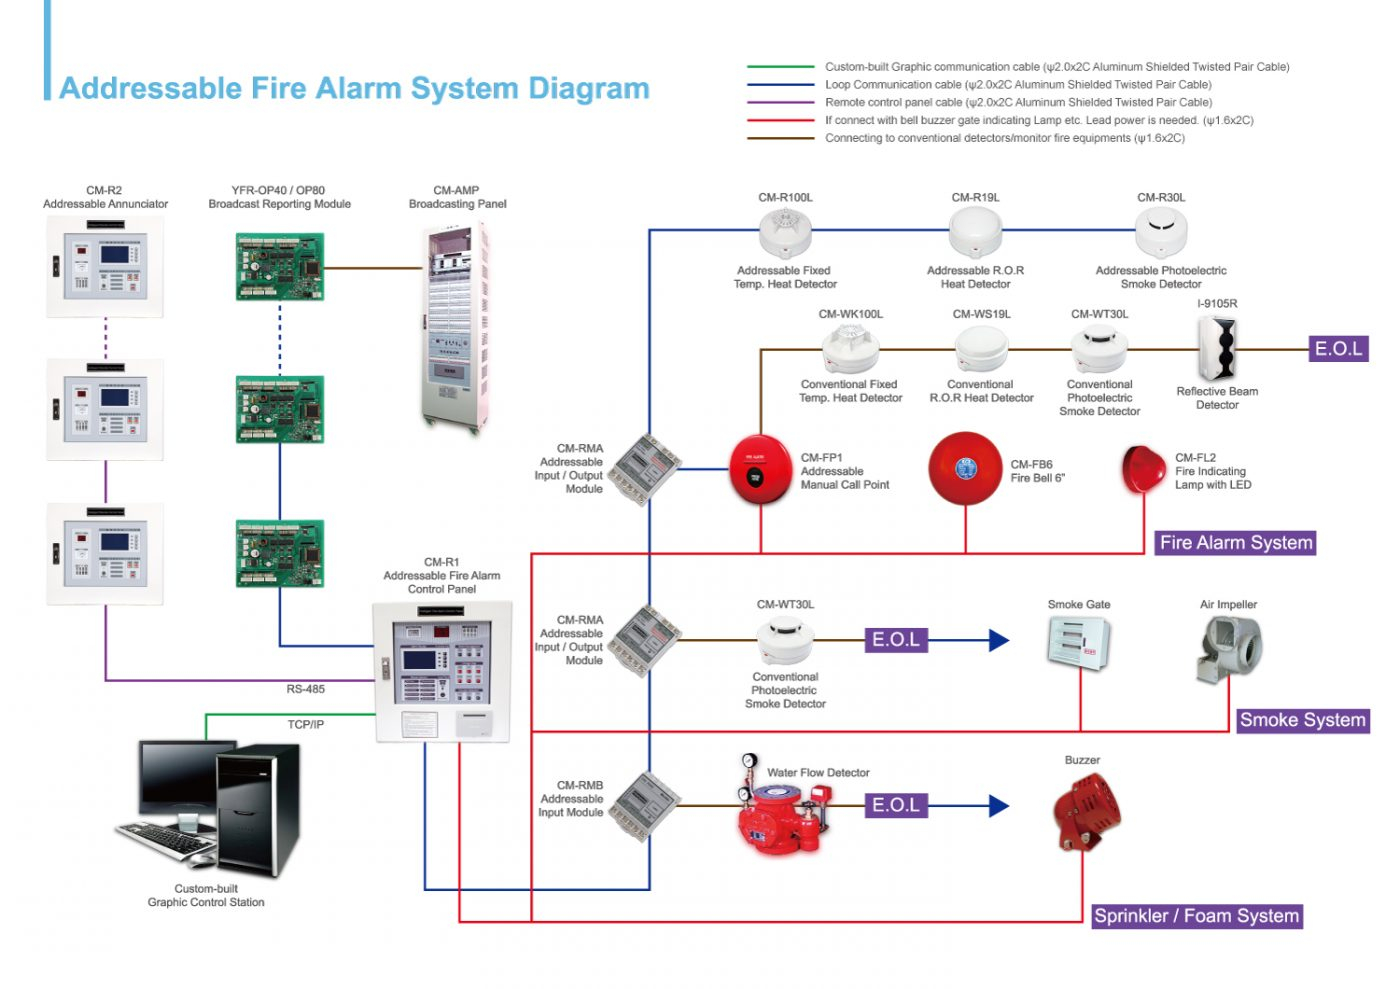 fire alarm system wiring diagram Collection-Simplex Fire Alarm Wiring Diagrams Schematics And Addressable Smoke Detector Diagram 13-n